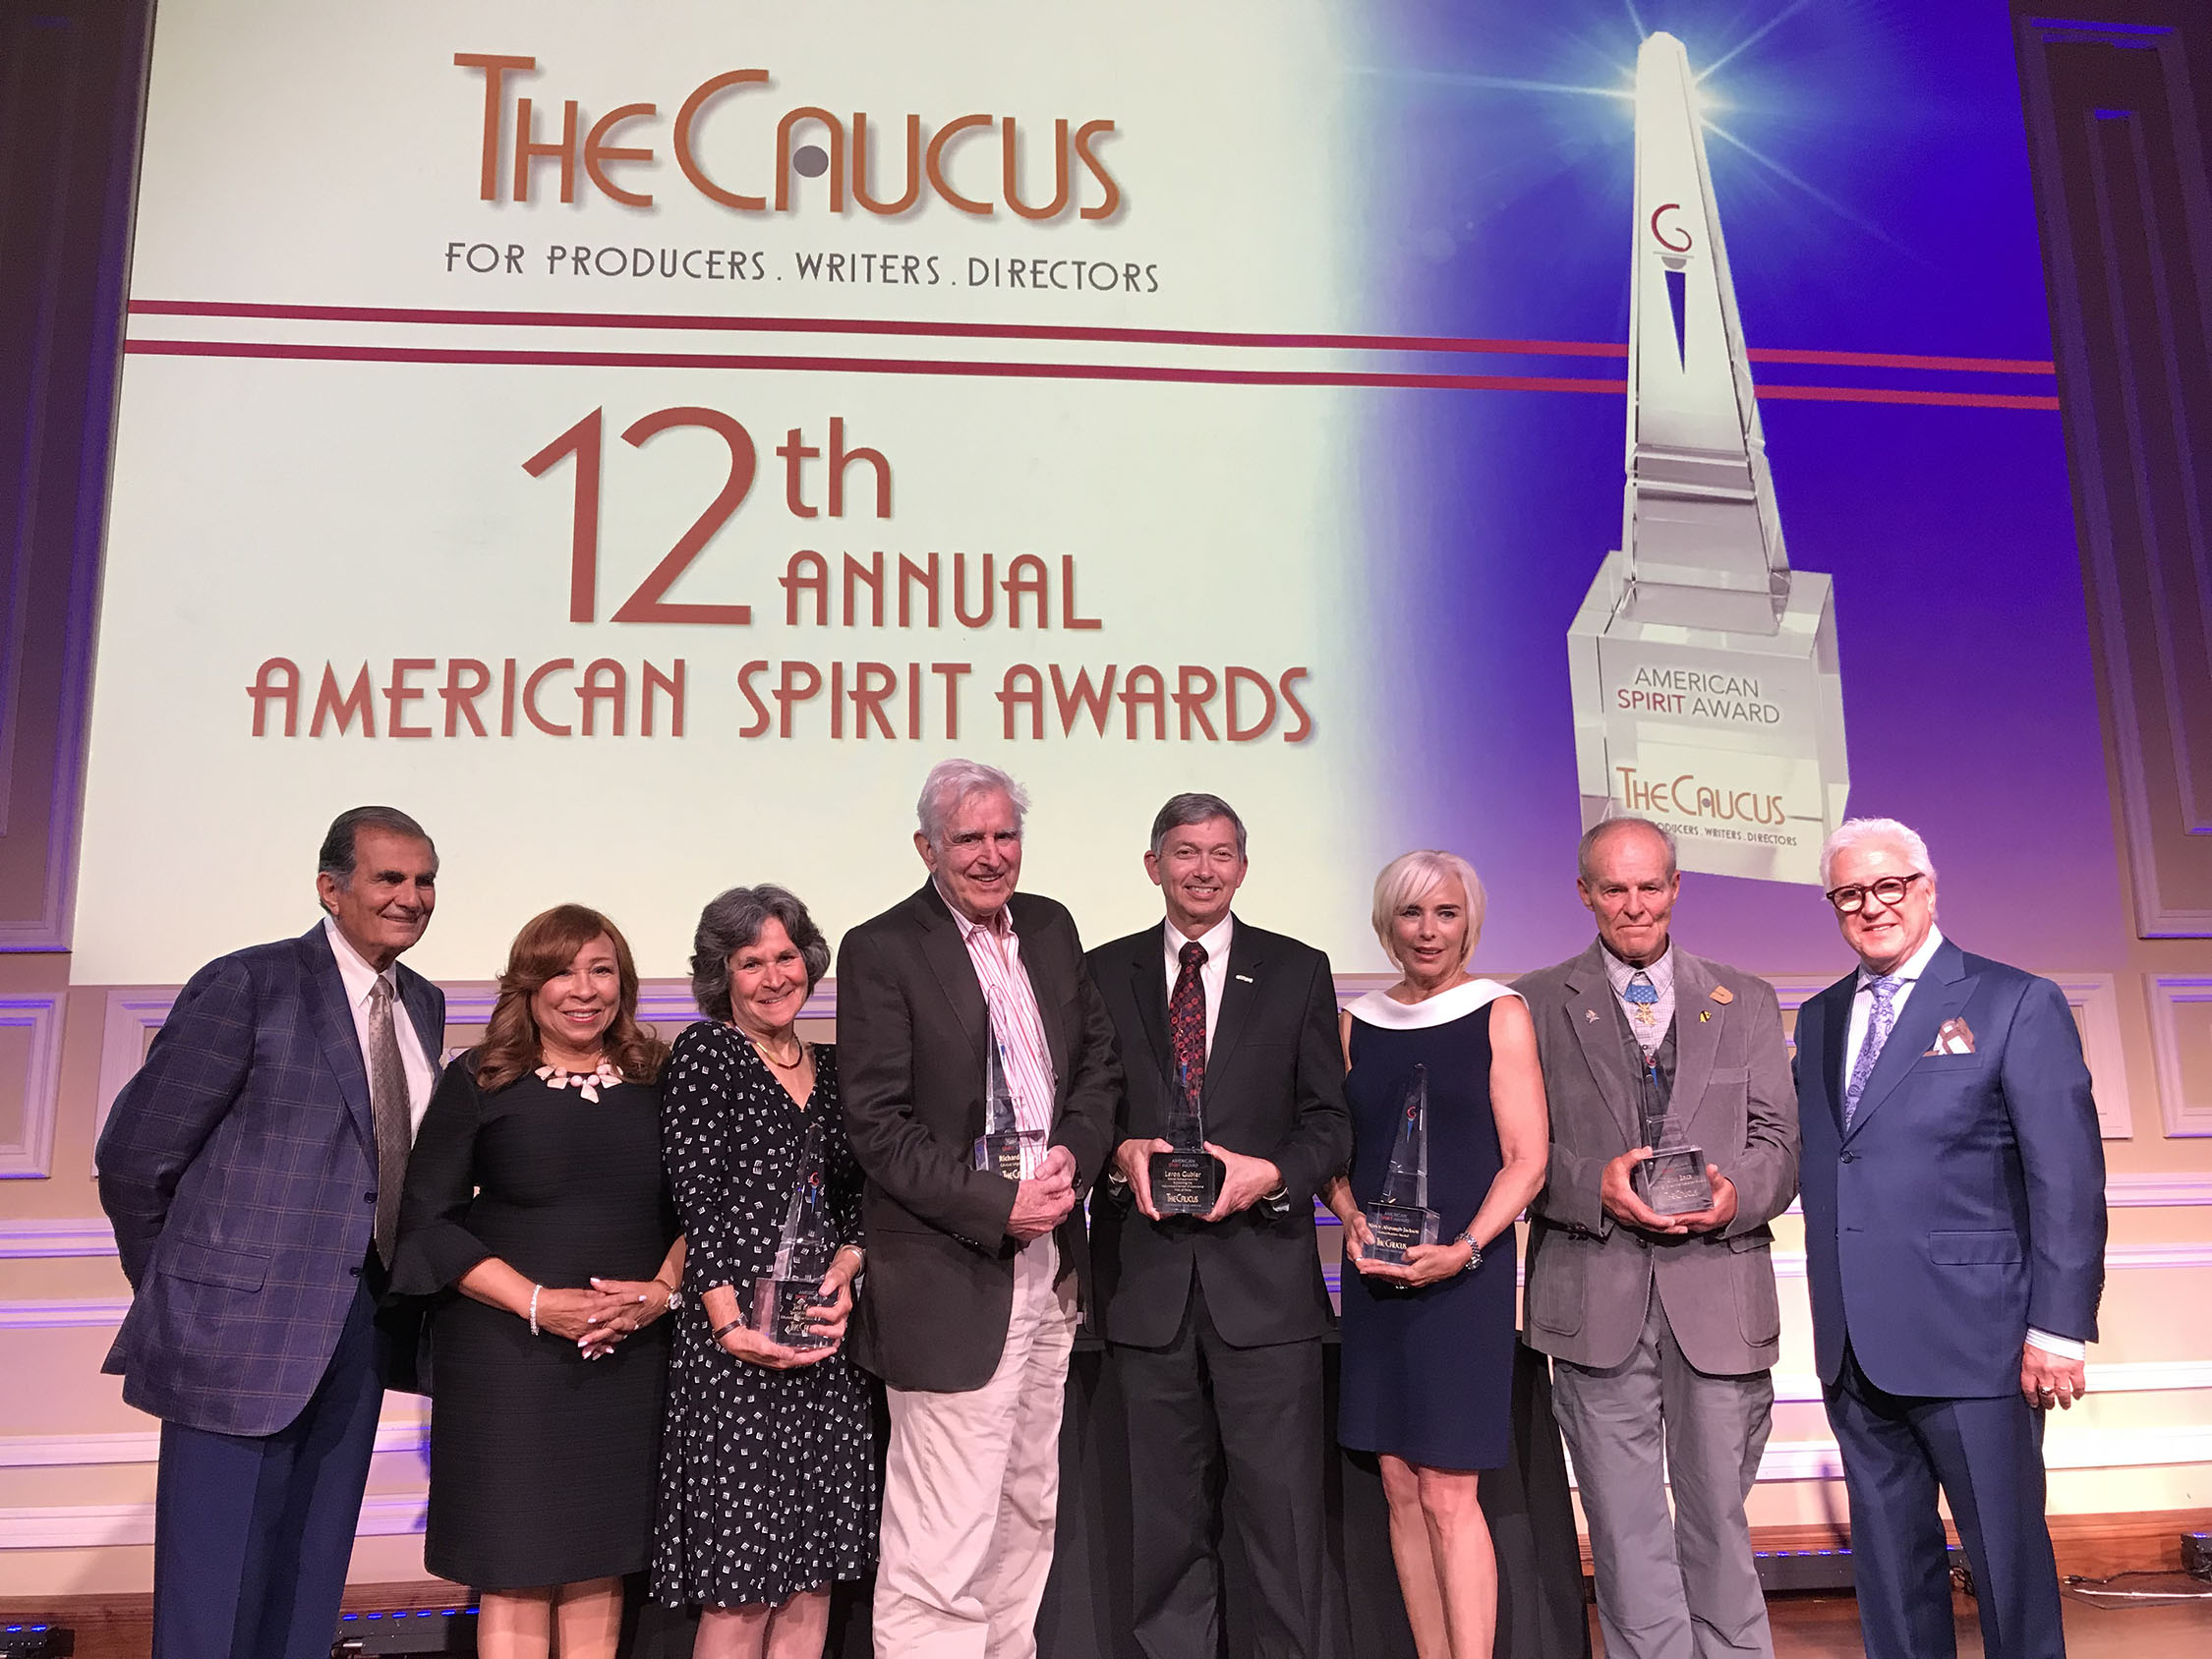 Pictured from left: The Caucus Co-chairs Robert Papazian, Tanya Hart and honorees Jan Krawitz, Richard Colla, Leron Gubler, Nancy Alspaugh-Jackson, John Baca and Executive Producer Vin Di Bona at the 12th Annual American Spirit Awards presented by The Caucus For Producers, Writers & Directors at Taglyan Complex, June 21, 2018. Photo by Marlene Panoyan.